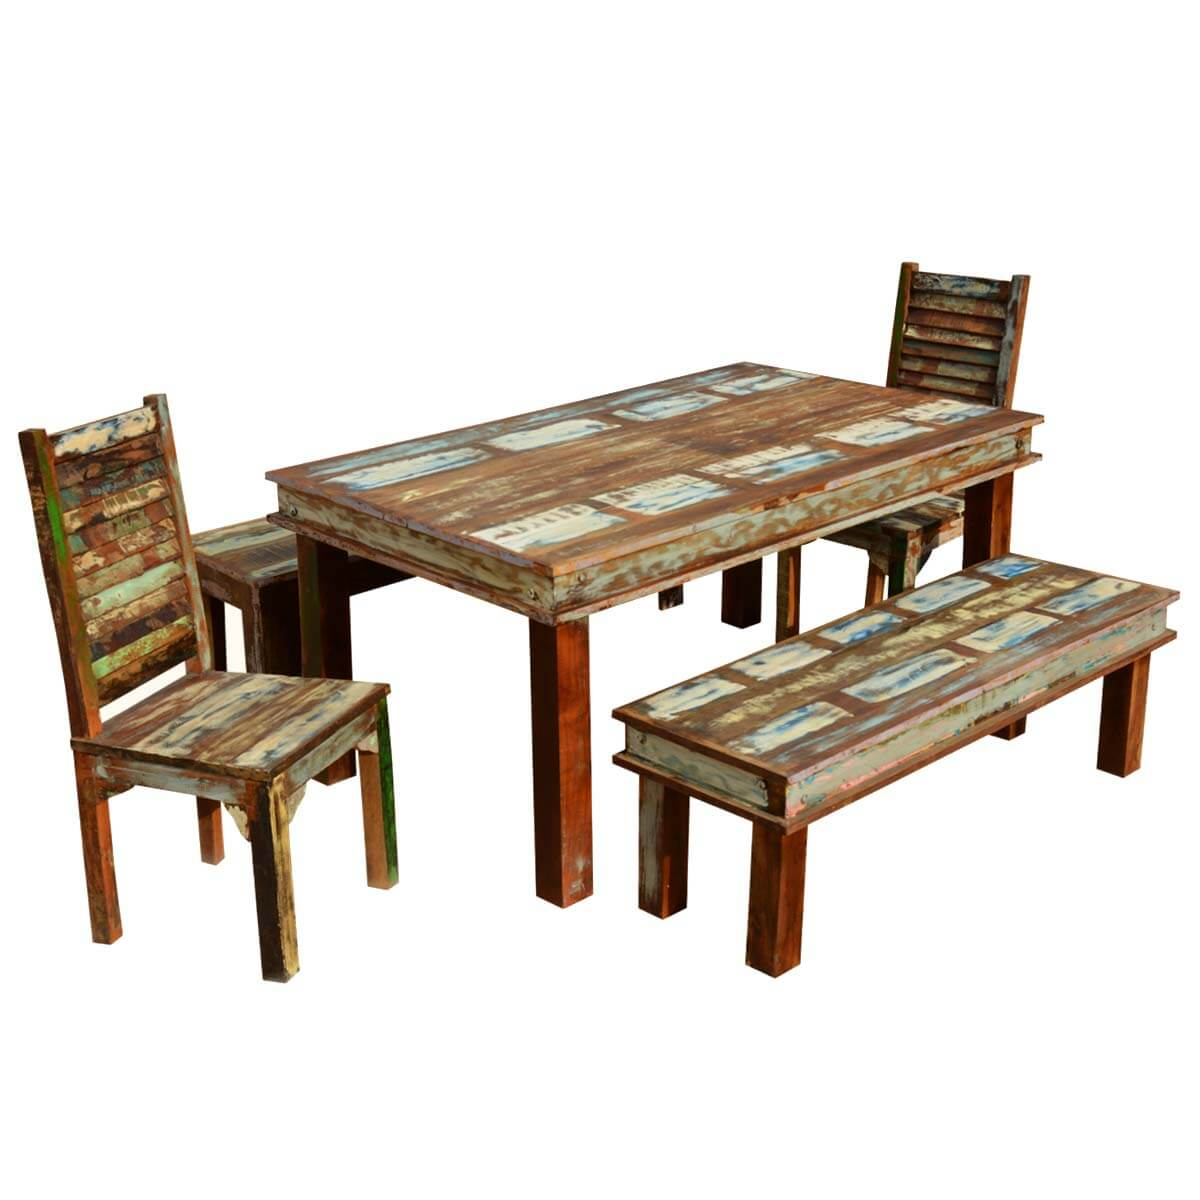 2 Chair Dining Table Sierra Reclaimed Wood Furniture Dining Table With 2 Chairs